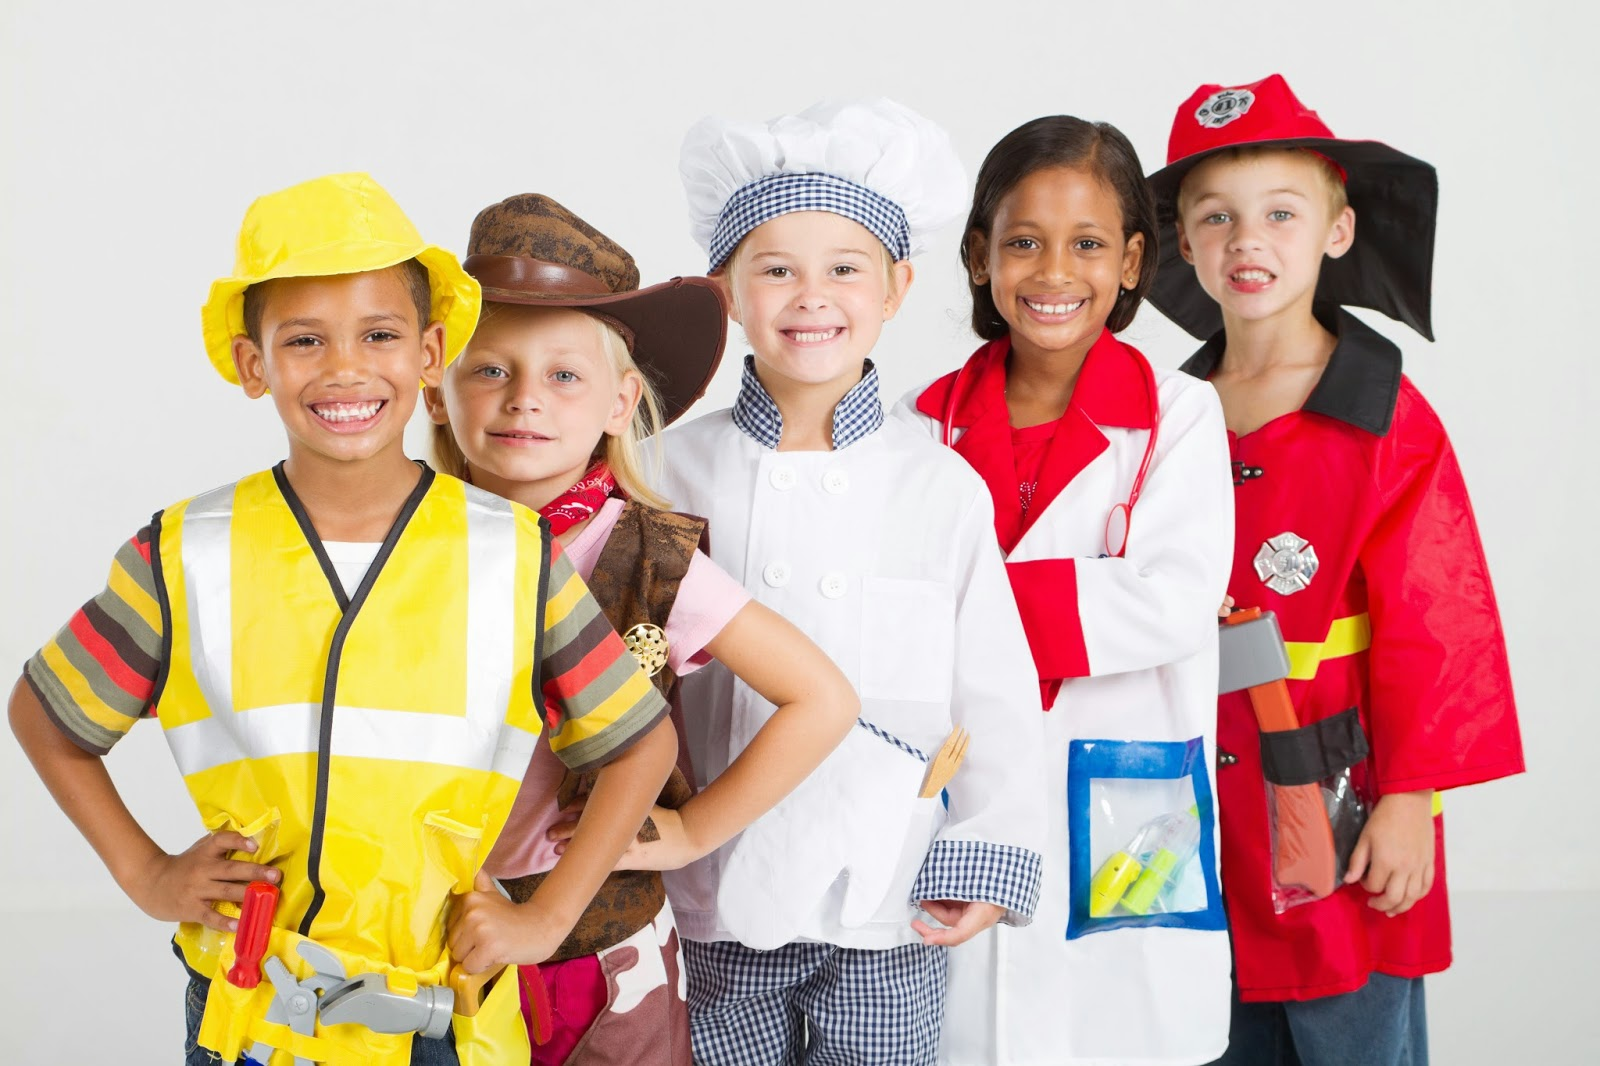 kids in uniforms costumes